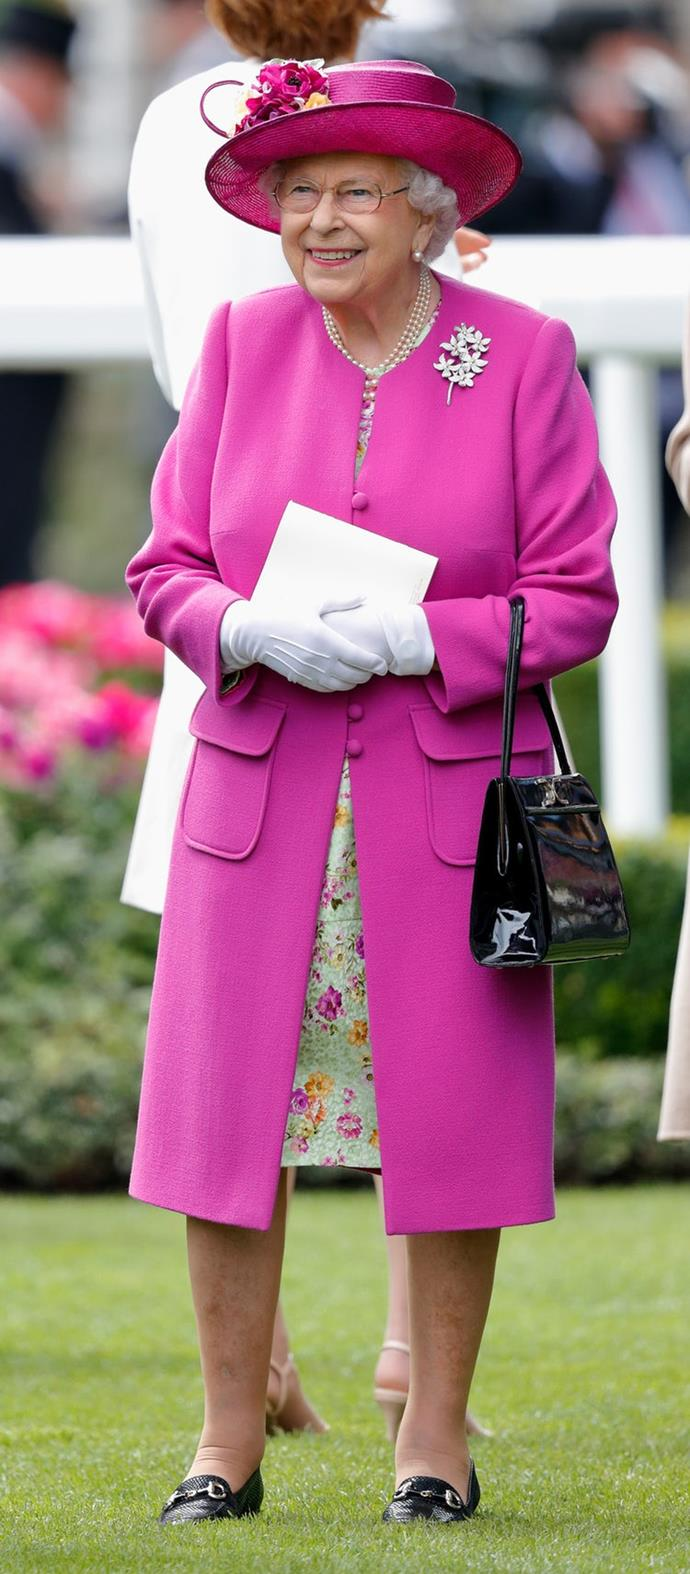 Queen Elizabeth looked pretty in pink at the 2017 Royal Ascot.